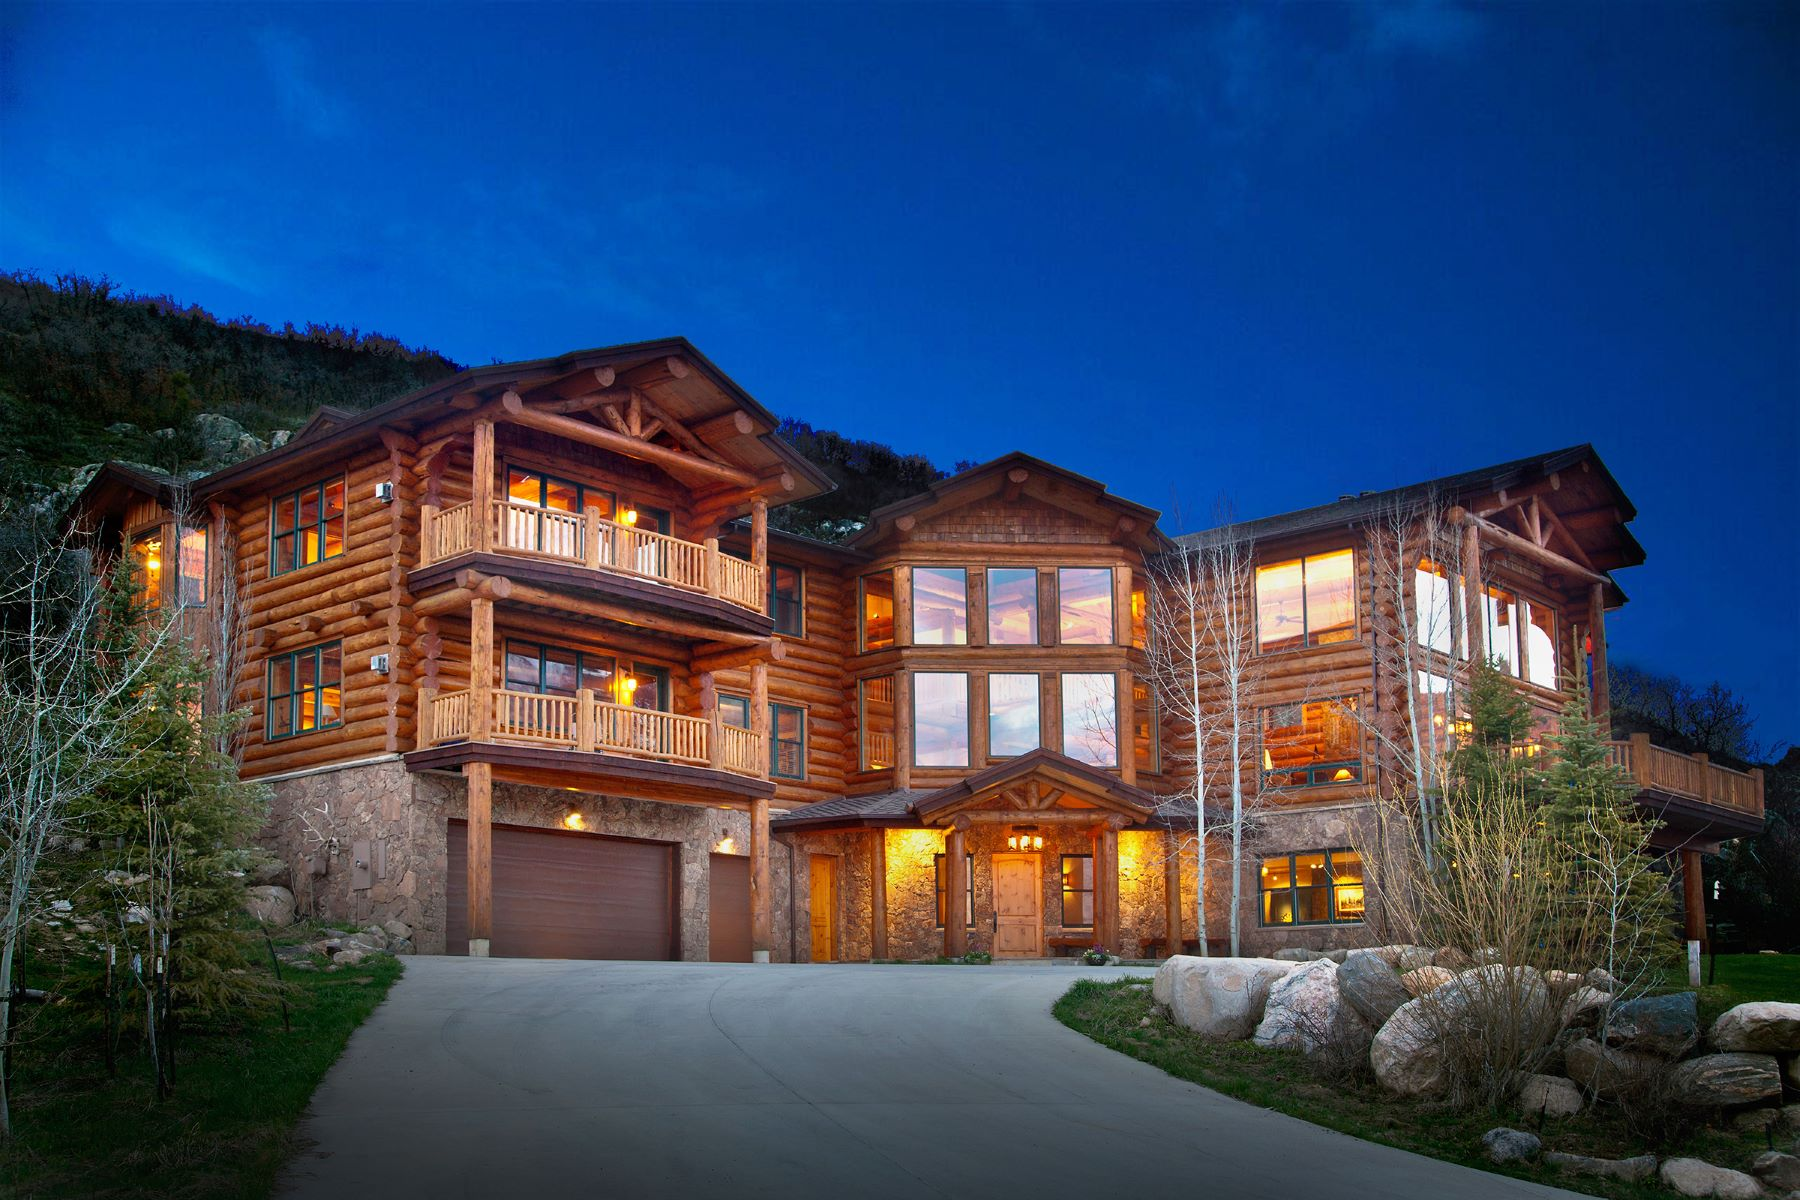 Single Family Home for Sale at Sanctuary Log Home 2600 Heavenly View, Steamboat Springs, Colorado, 80487 United States